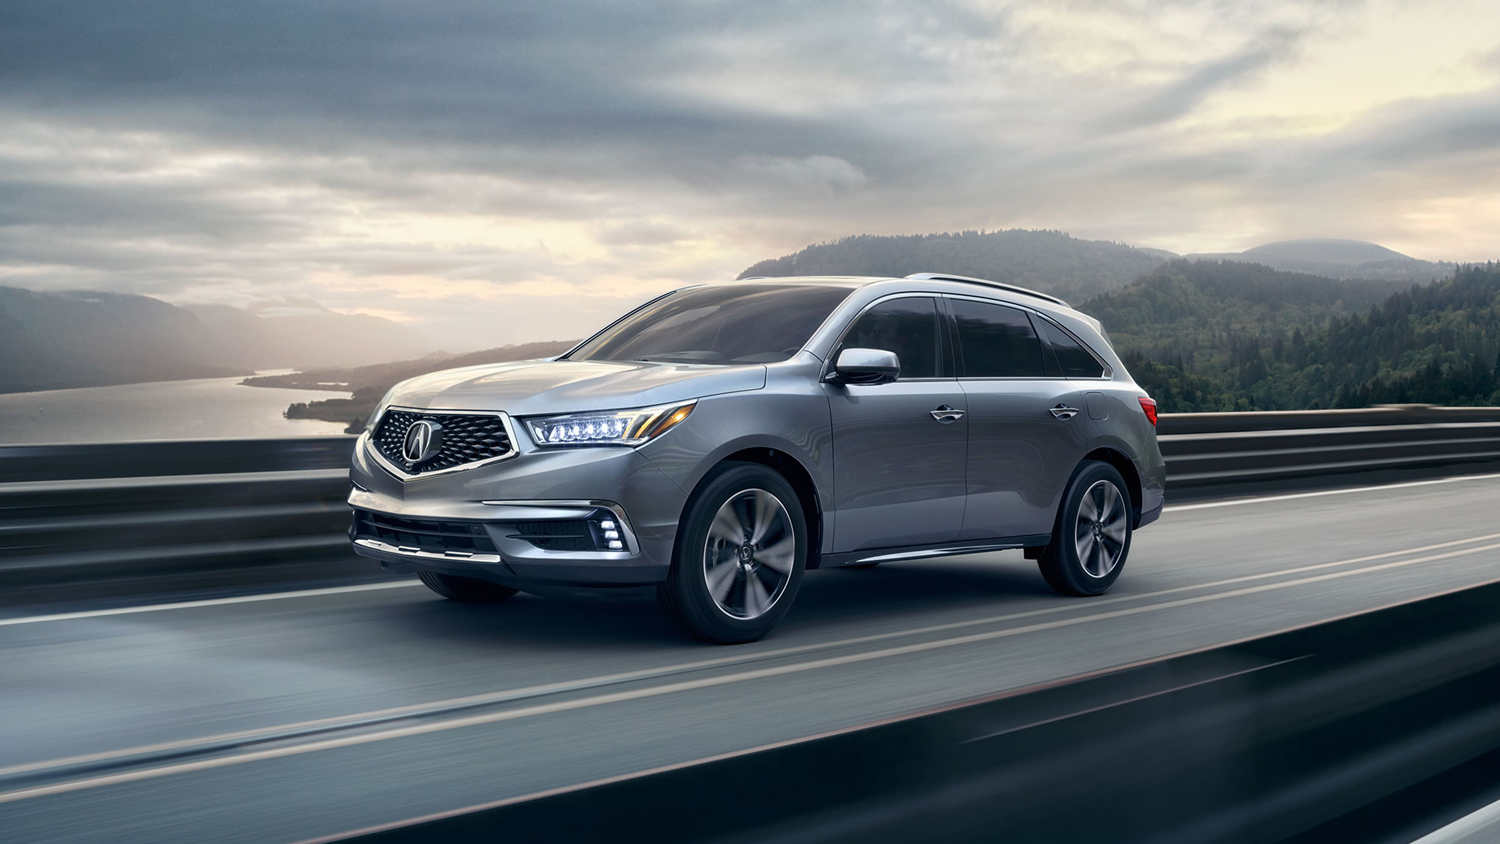 Ilx Acura Reviews >> 2017 Acura MDX | Central Texas Acura Dealers